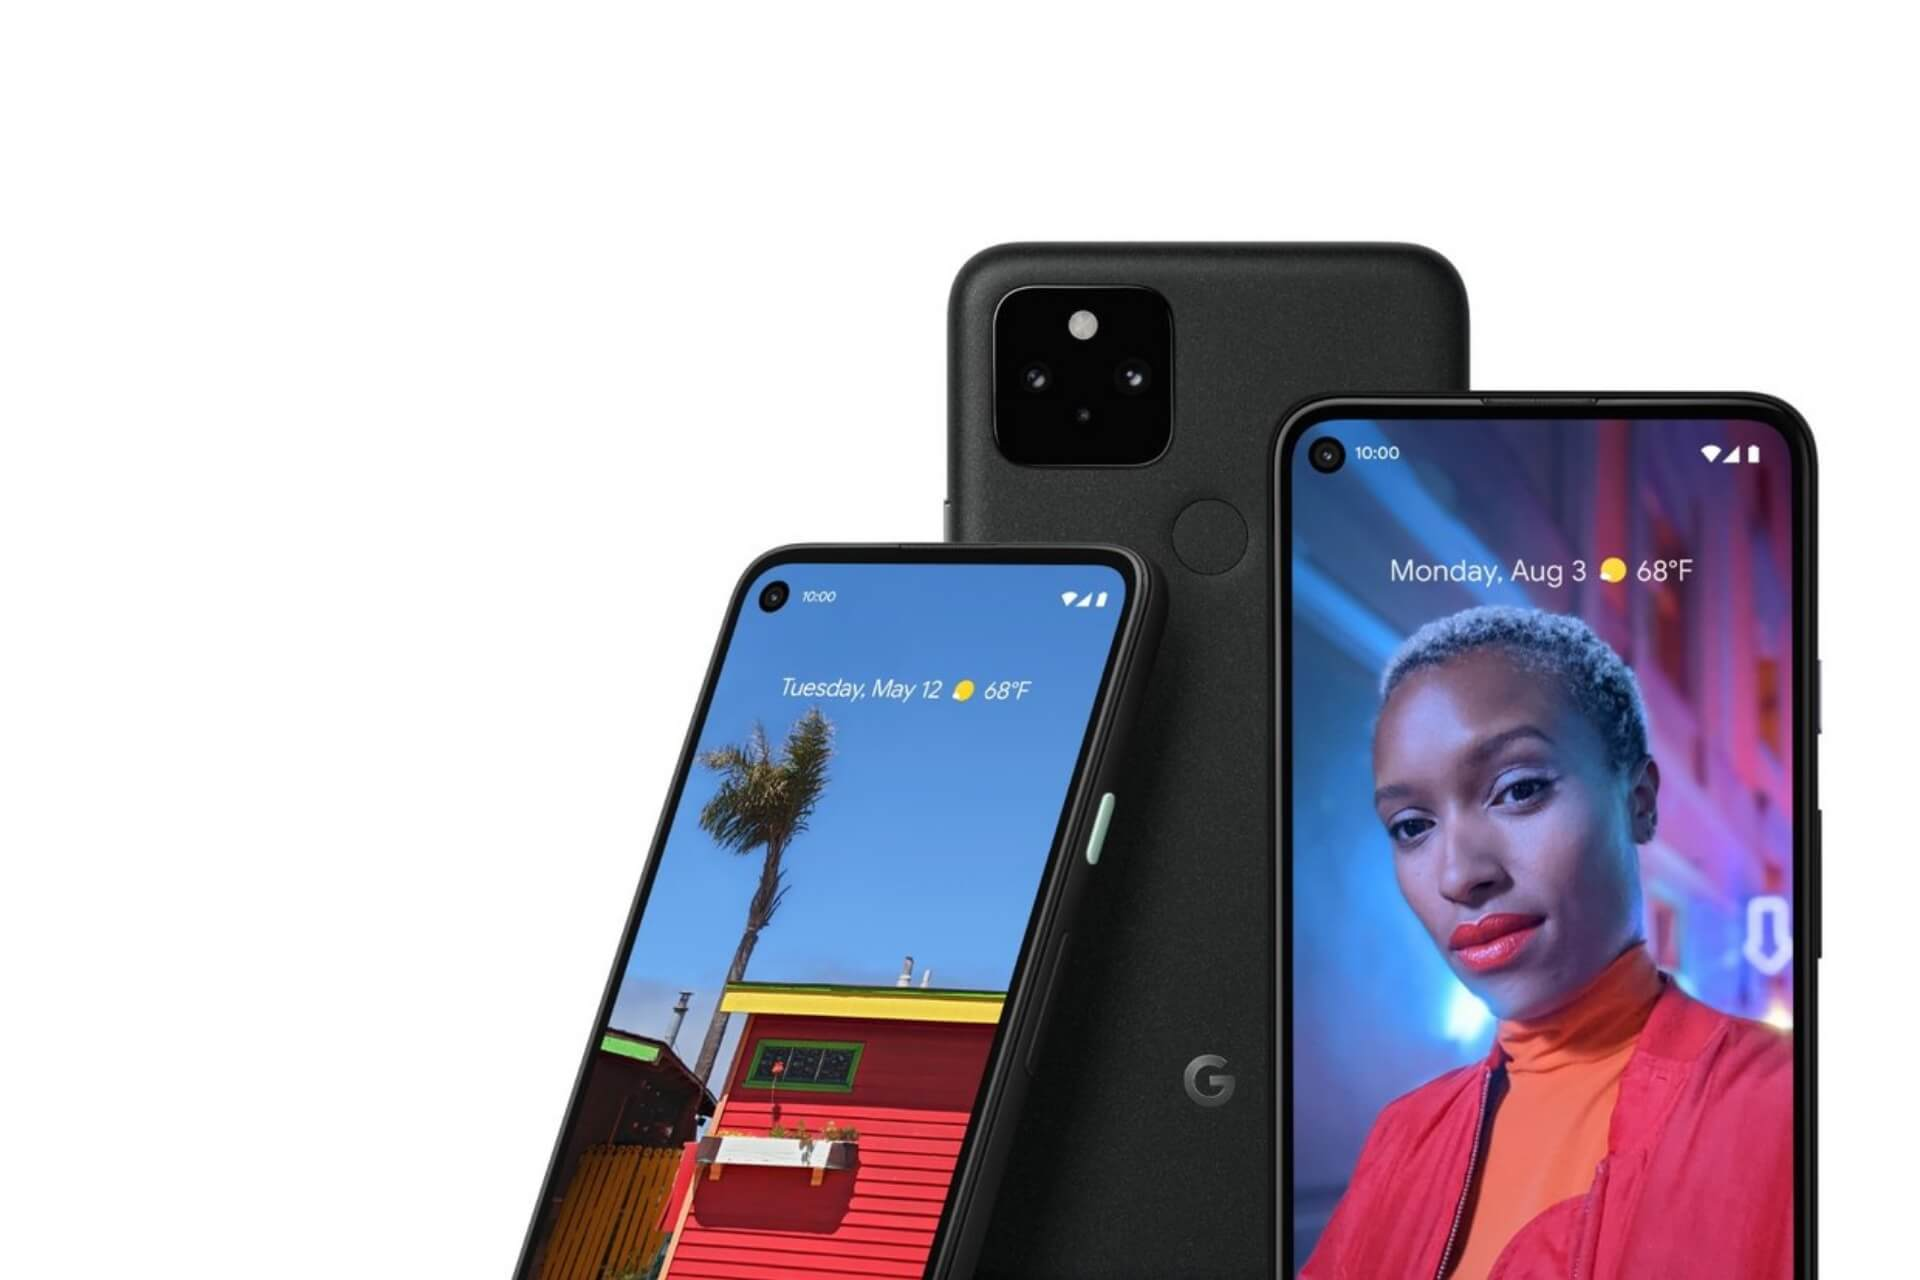 Google Launches Pixel 4a (5G) & Pixel 5 with 5G Speed at Affordable Prices